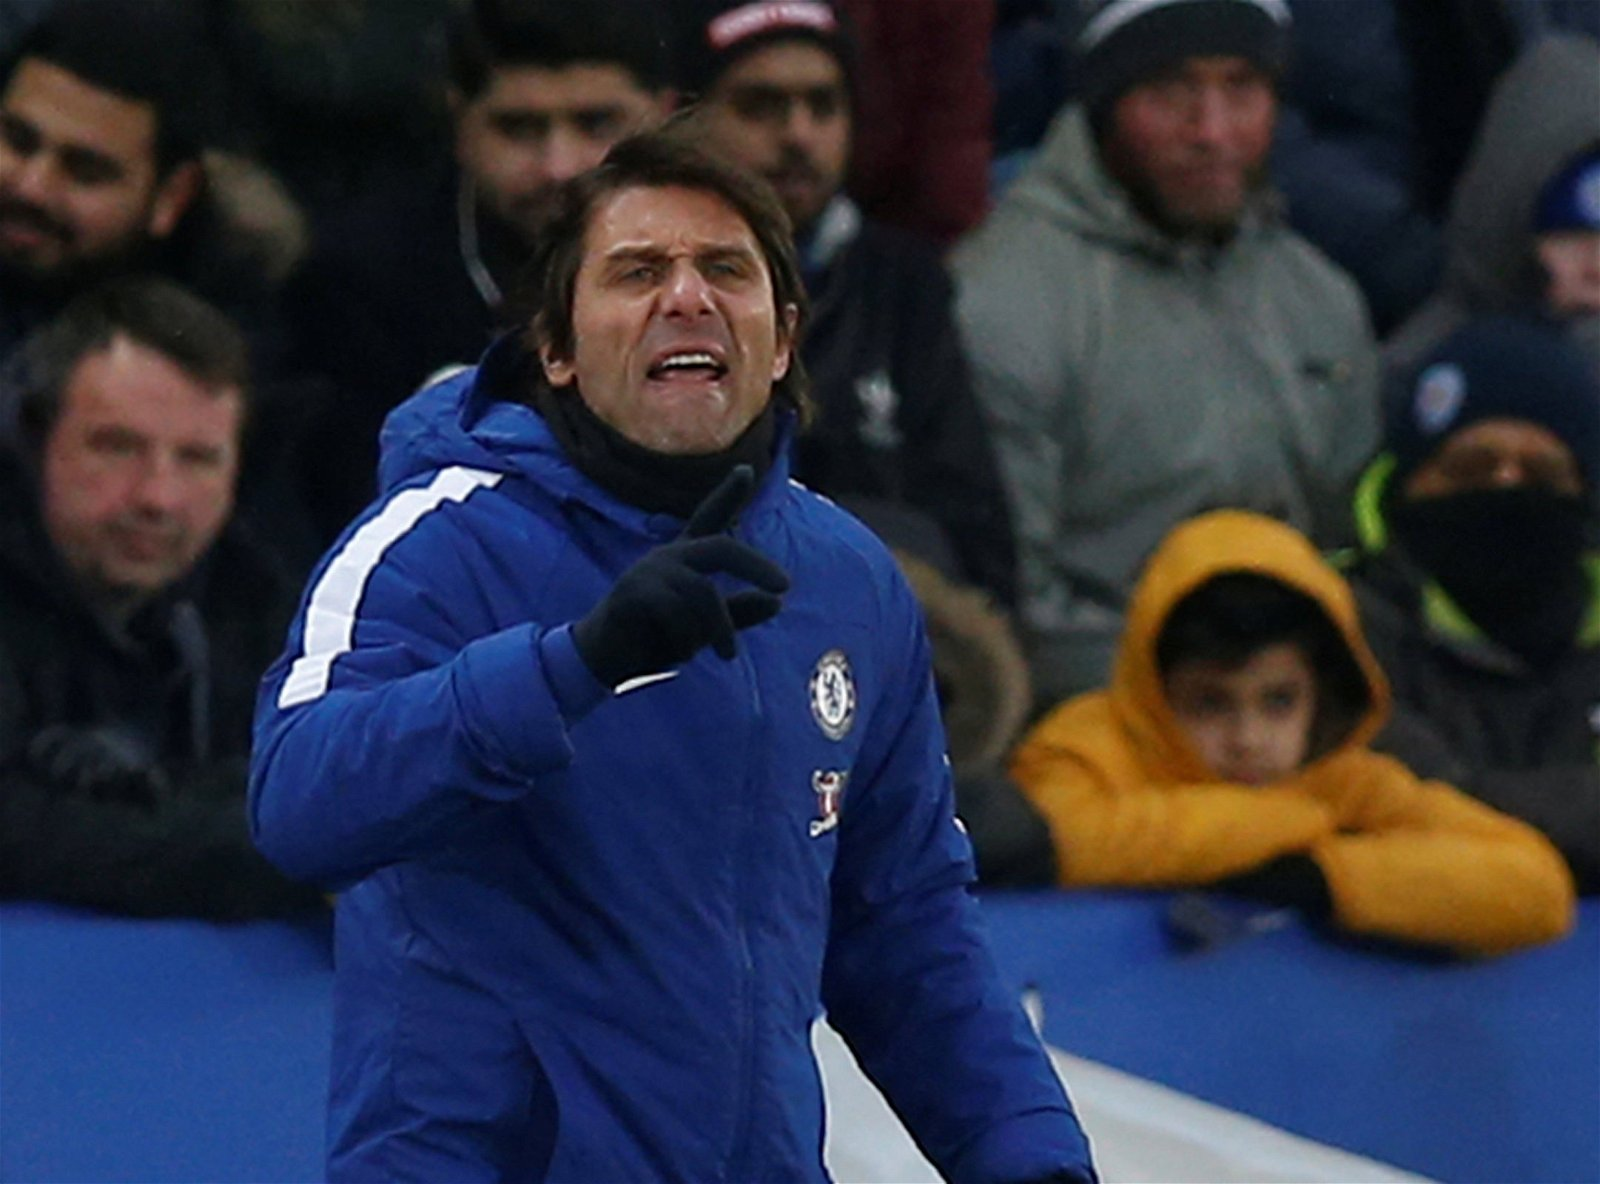 Antonio Conte on the touchline at the King Power Stadium